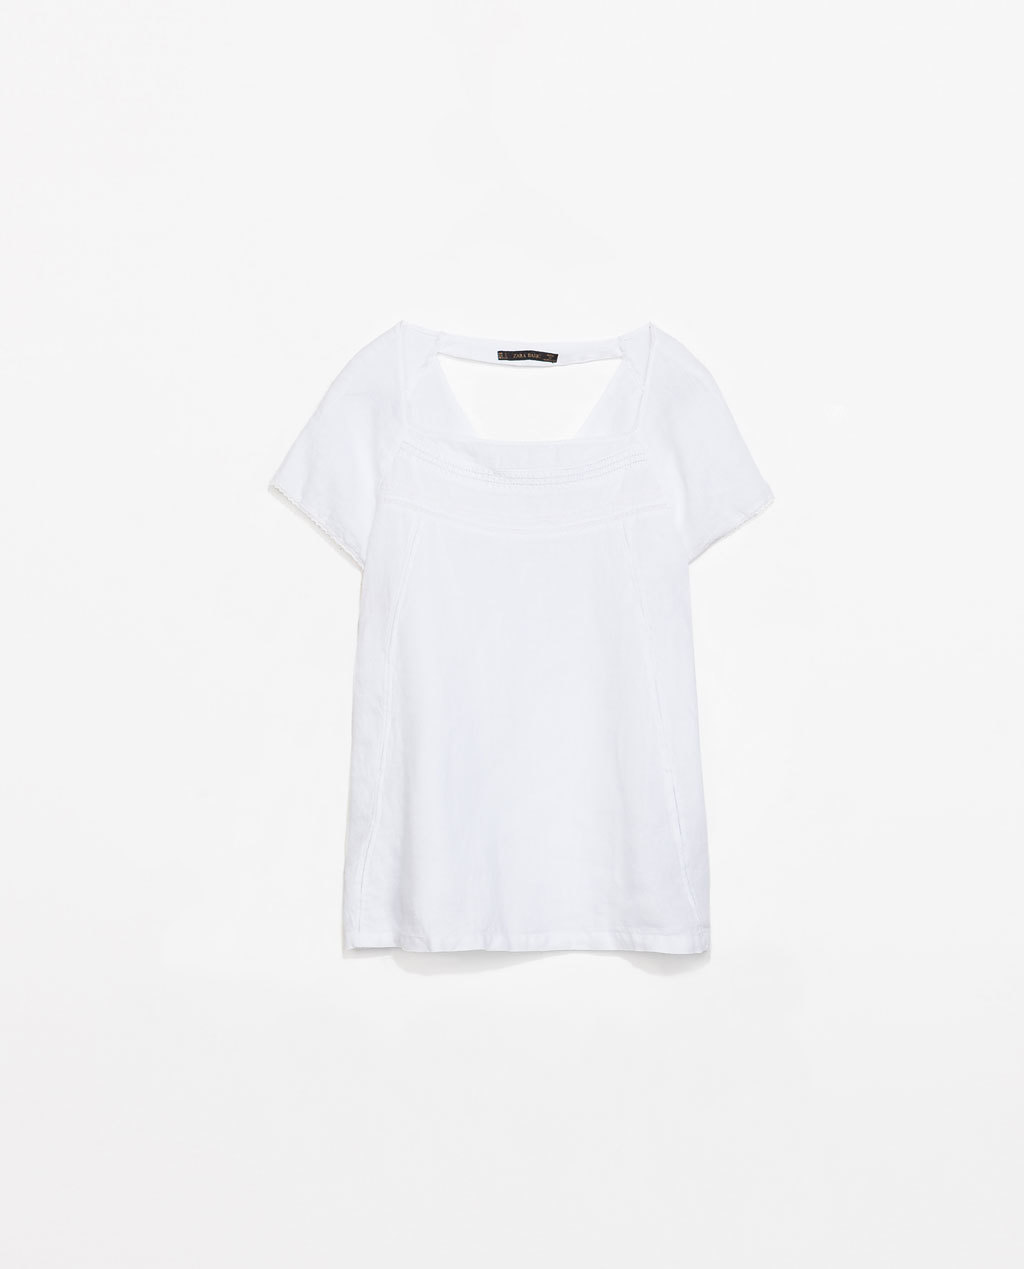 Short Sleeve Linen Top - pattern: plain; predominant colour: white; occasions: casual, holiday; length: standard; style: top; fibres: linen - 100%; fit: straight cut; sleeve length: short sleeve; sleeve style: standard; texture group: linen; neckline: medium square neck; pattern type: fabric; embellishment: embroidered; season: s/s 2014